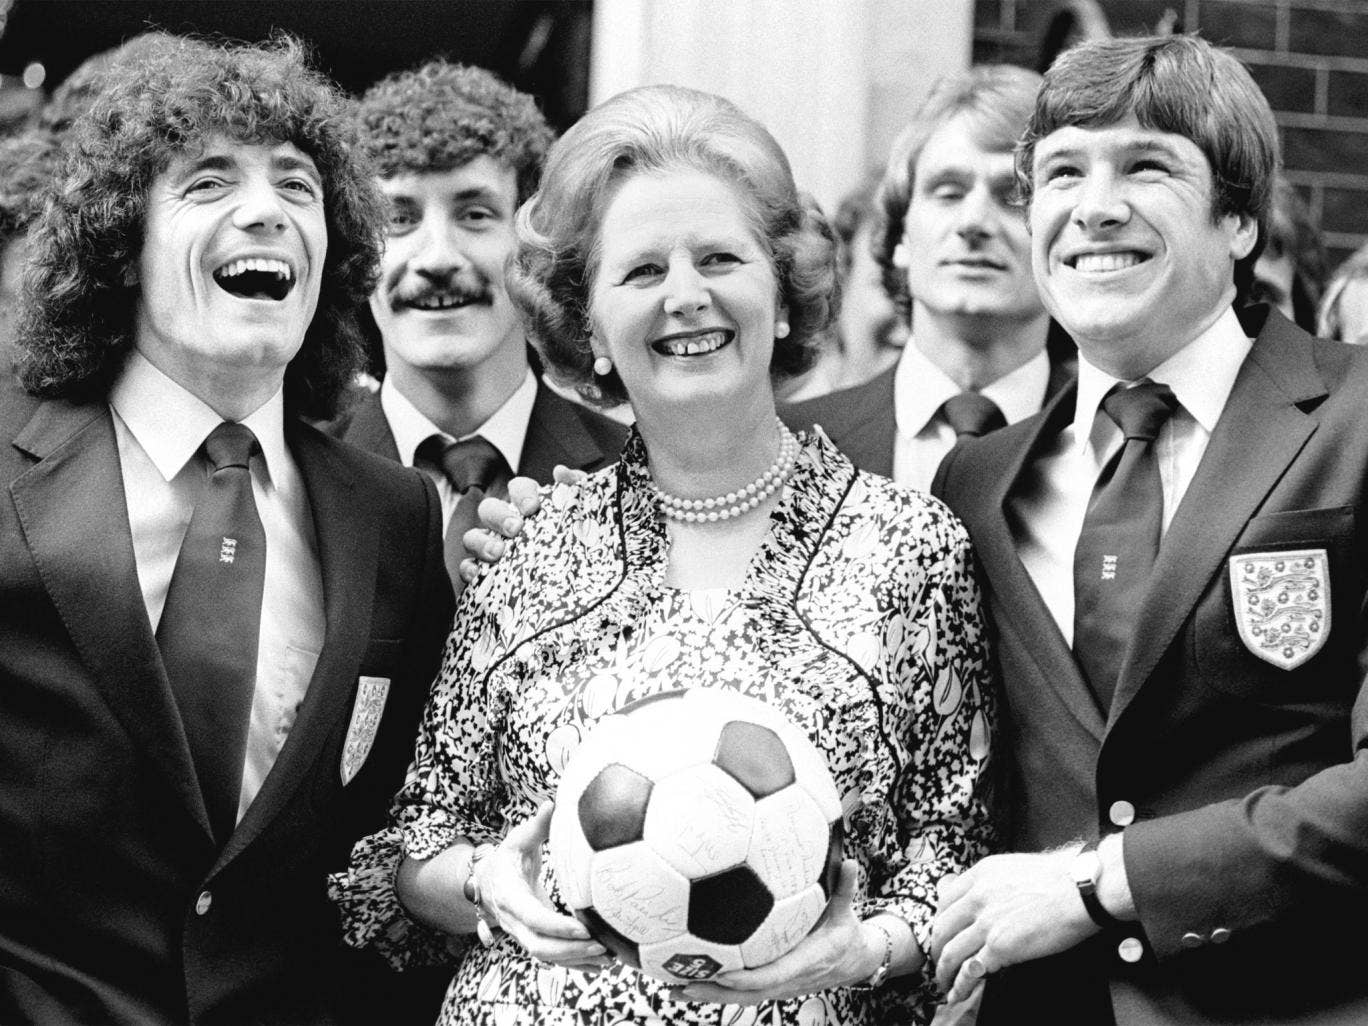 Margaret Thatcher takes advantage of a photo opportunity with Kevin Keegan (left), Emlyn Hughes and the rest of the England team of 1980